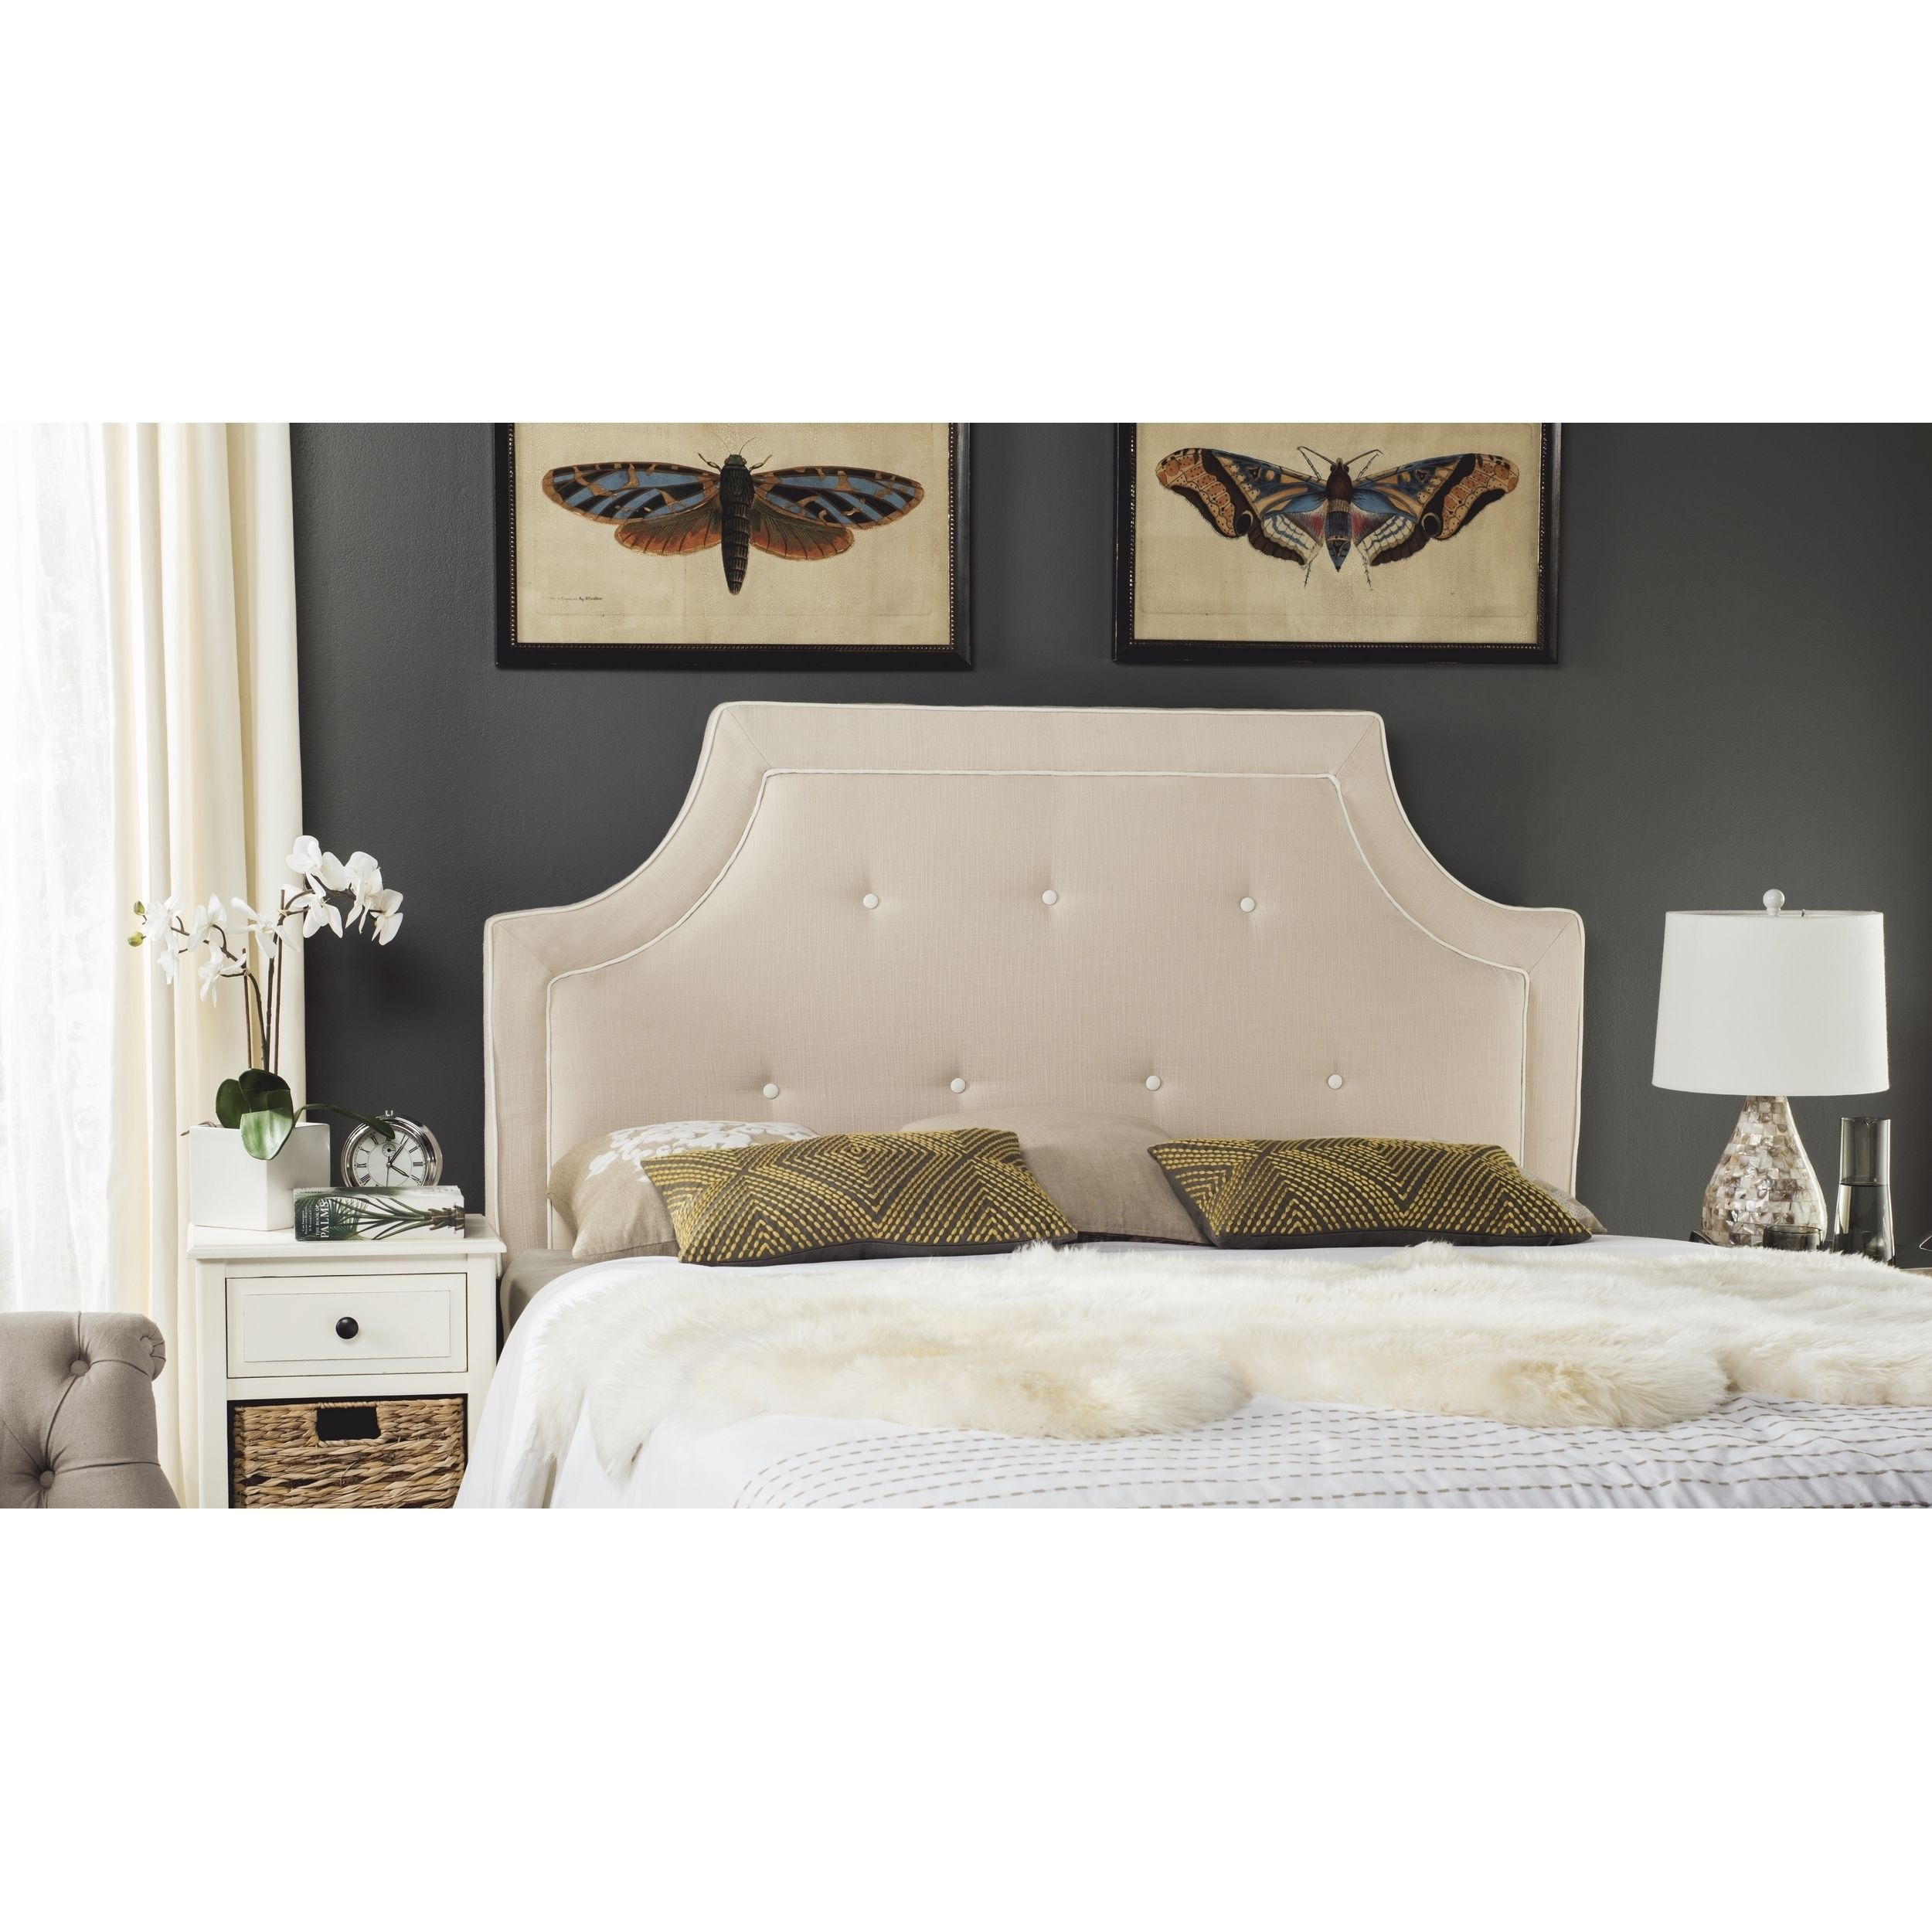 sale tufted double white cherry queen headboards wood king size beds full bed fabric discount only studded cheap for headboard beautiful black